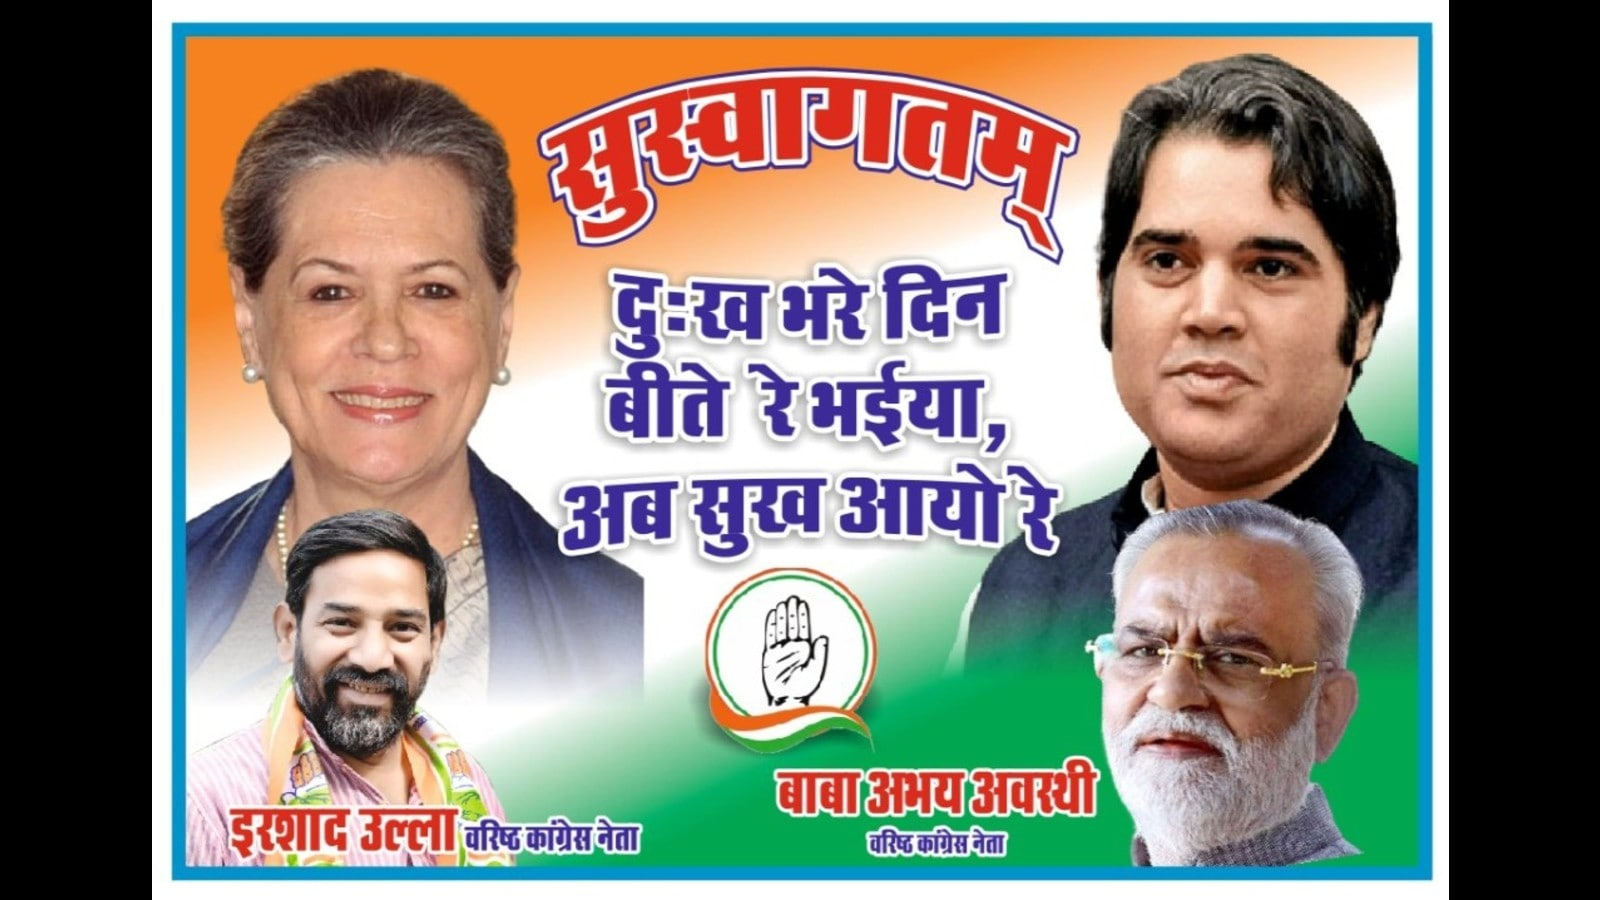 Cong leader gets show cause for making viral poster welcoming Varun to party